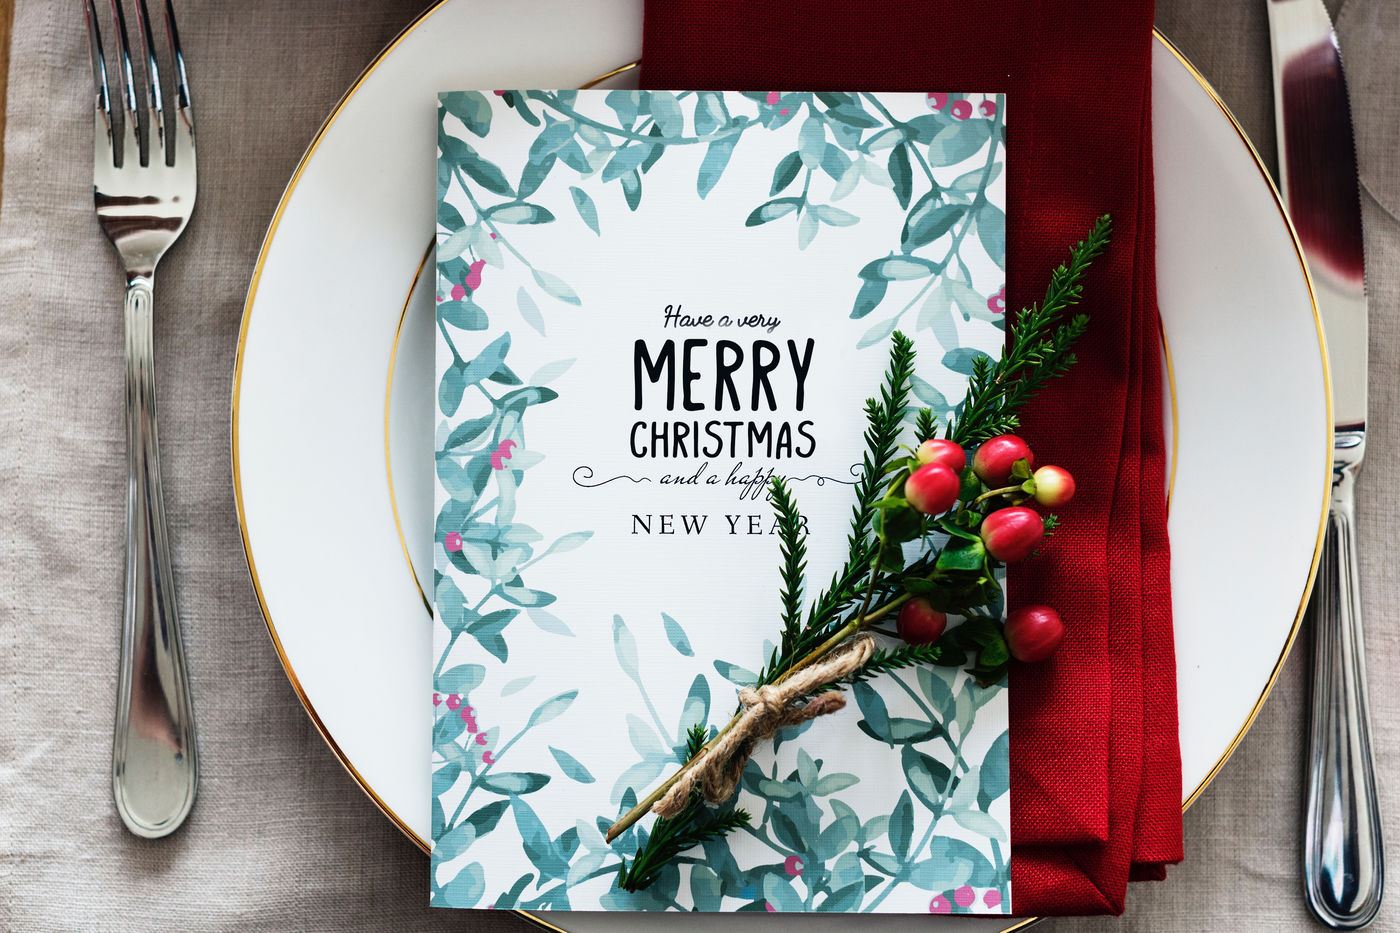 Merry Christmas Display Font And Doodles By Taningreen